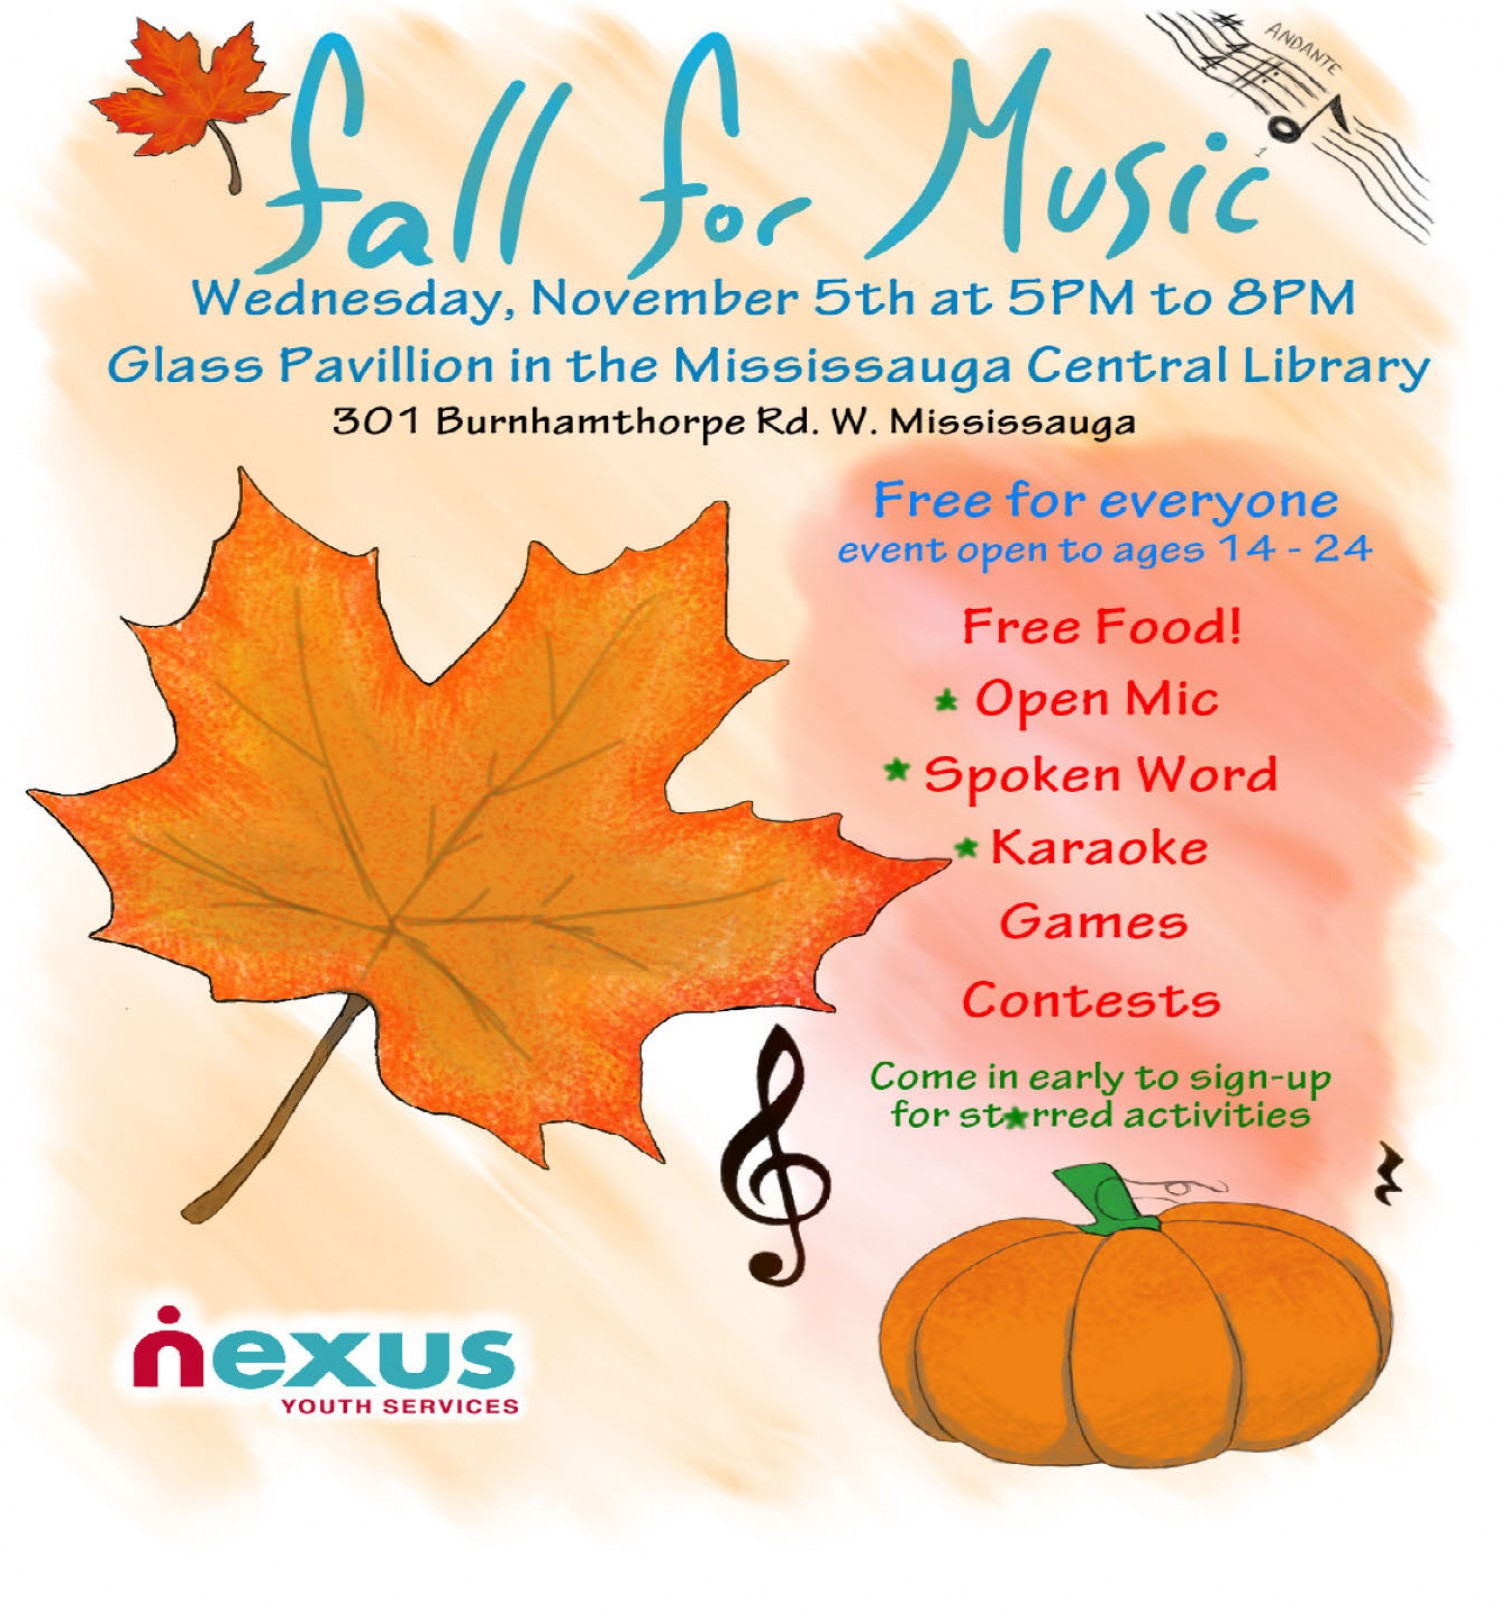 Free Talk Wednesday November 5th In >> Fall For Music With Nexus On November 5th News Nexus Youth Services